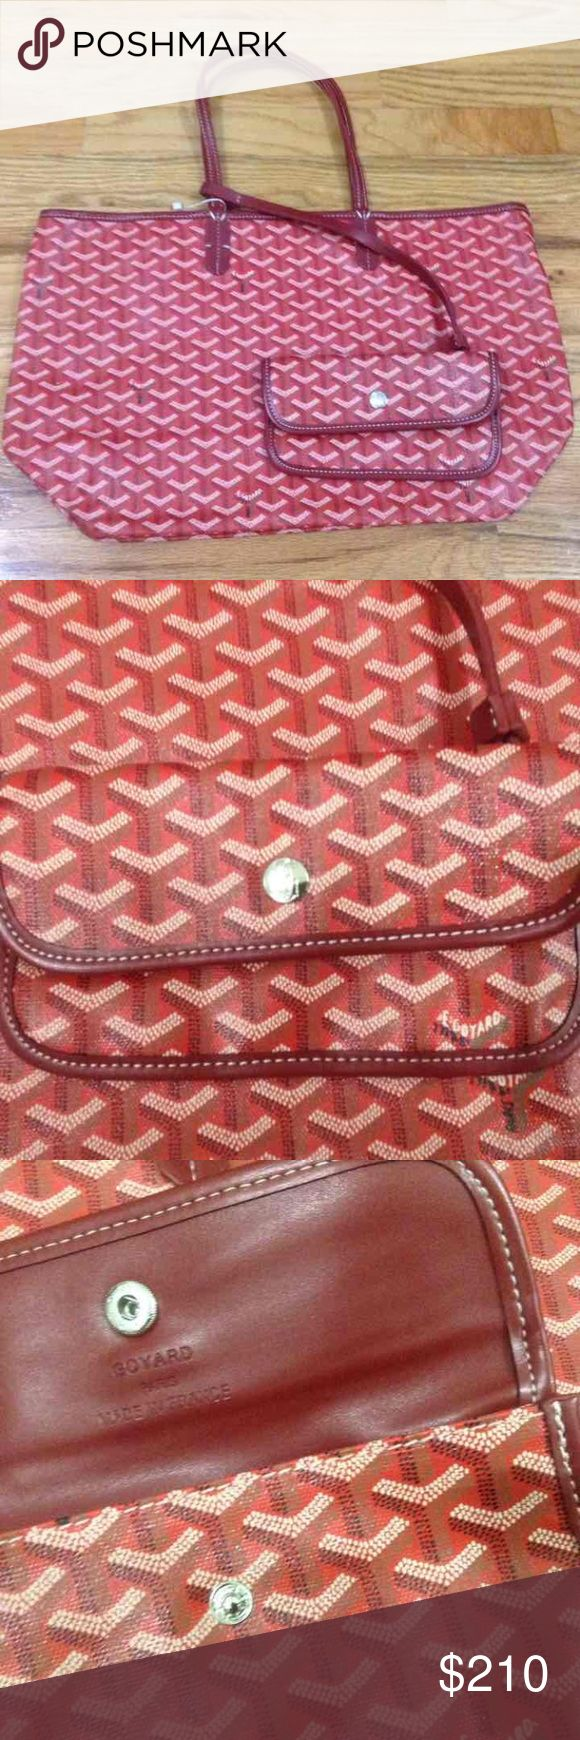 GOYARD premium Tote bag Brand new- with tags and wallet attached- *price reflects auth* Goyard Bags Totes